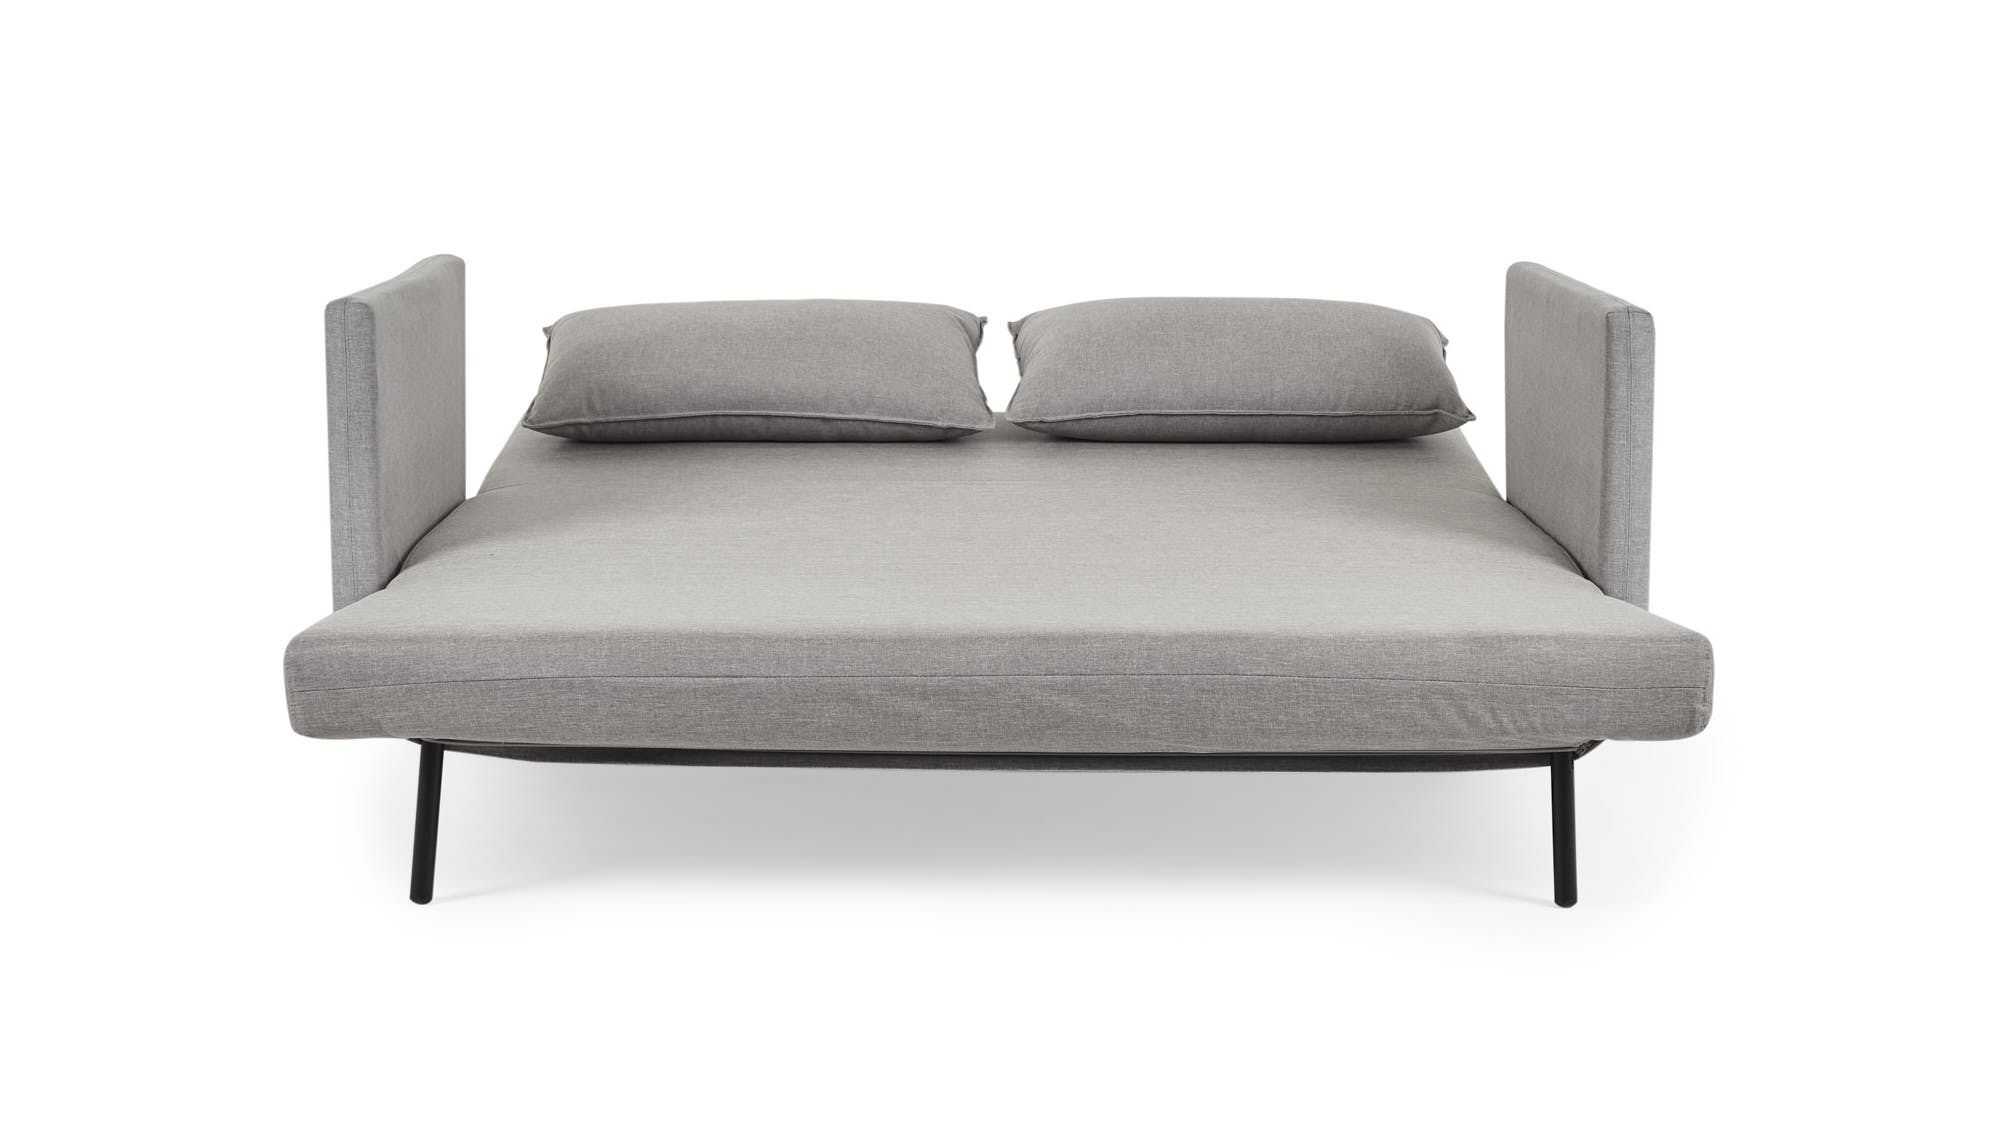 Scandy 2 Seat Sofa Bed 999